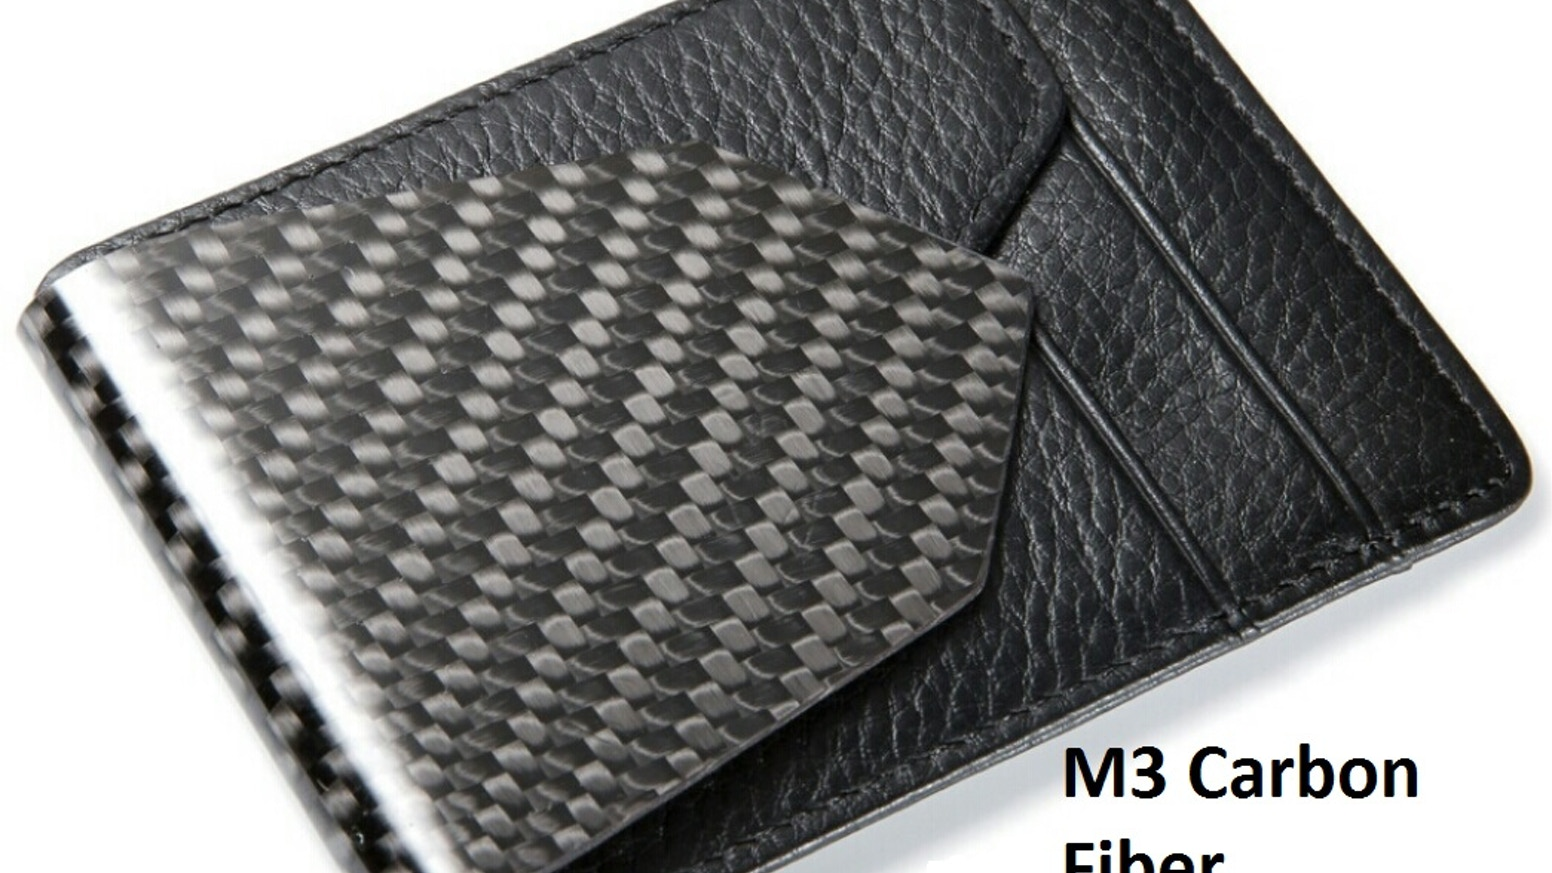 7da2bf95709 ... Carbon Fiber Money Clip www.Bankswallet.com. Available in genuine  leather finish. Amazing protection and timeless design  the most innovative  minimalist